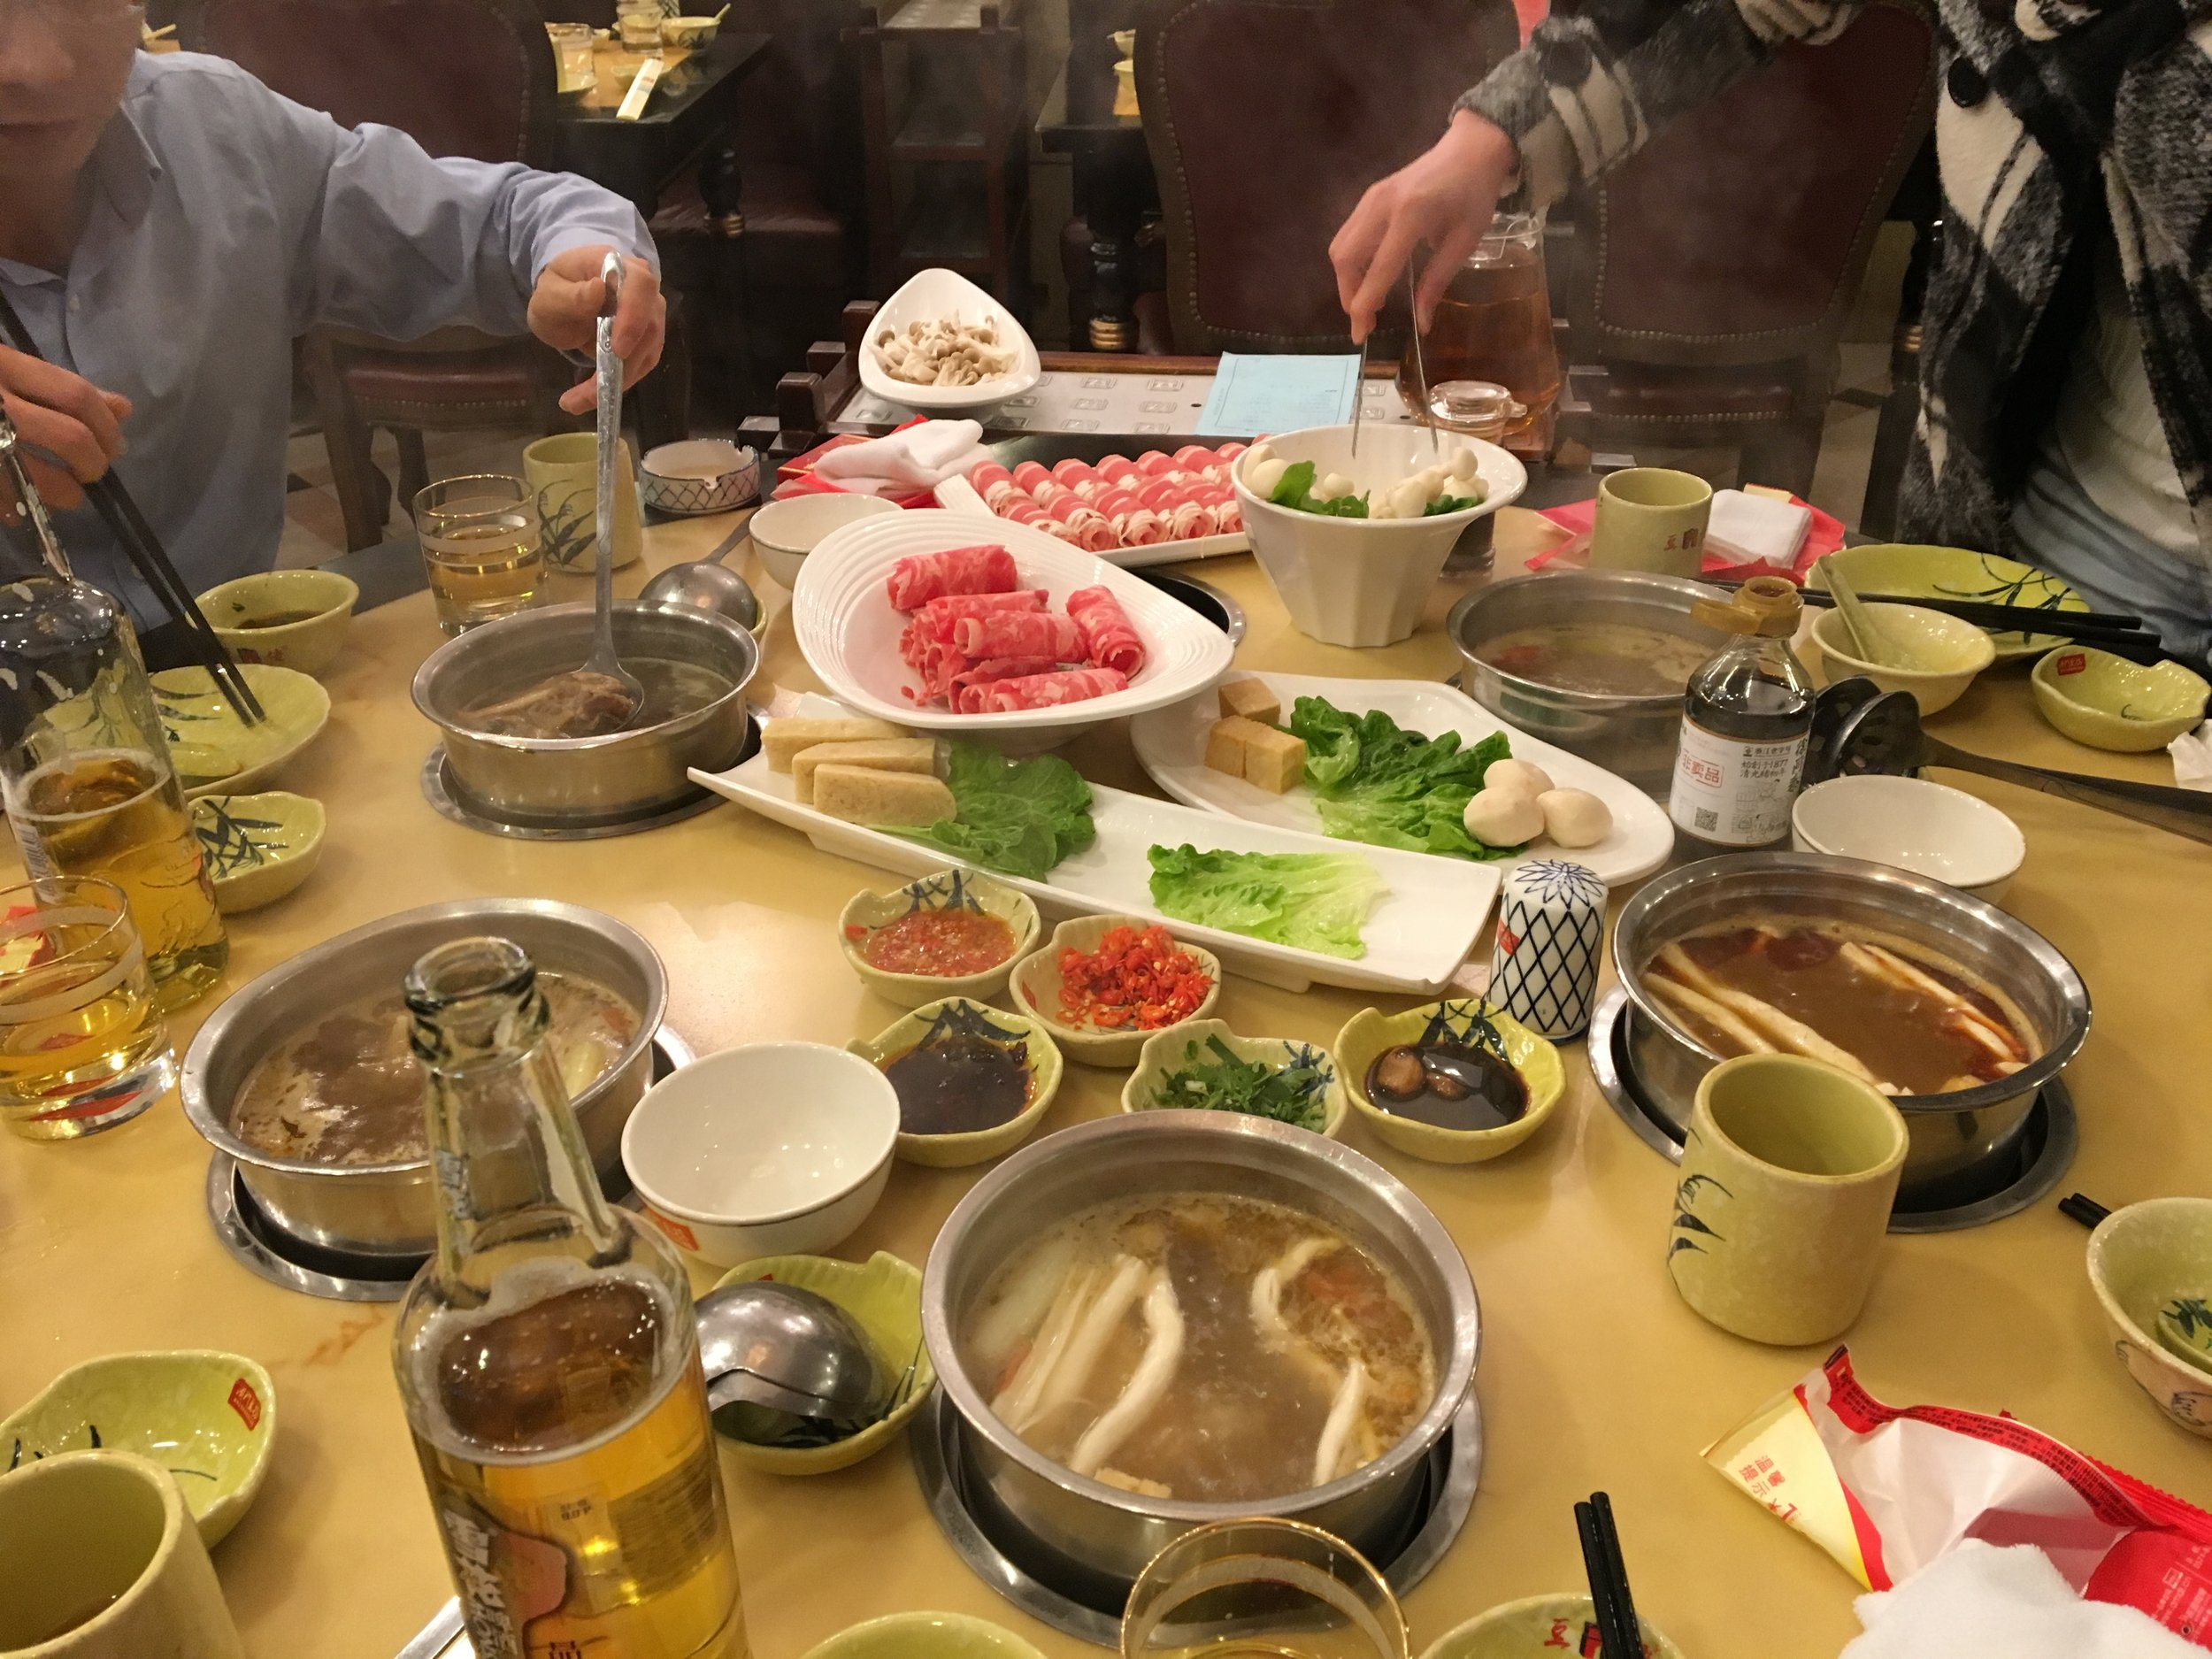 """Hot pot"" dinner: Pick your broth, add which veggies or meats you would like to cook in it, and enjoy!"